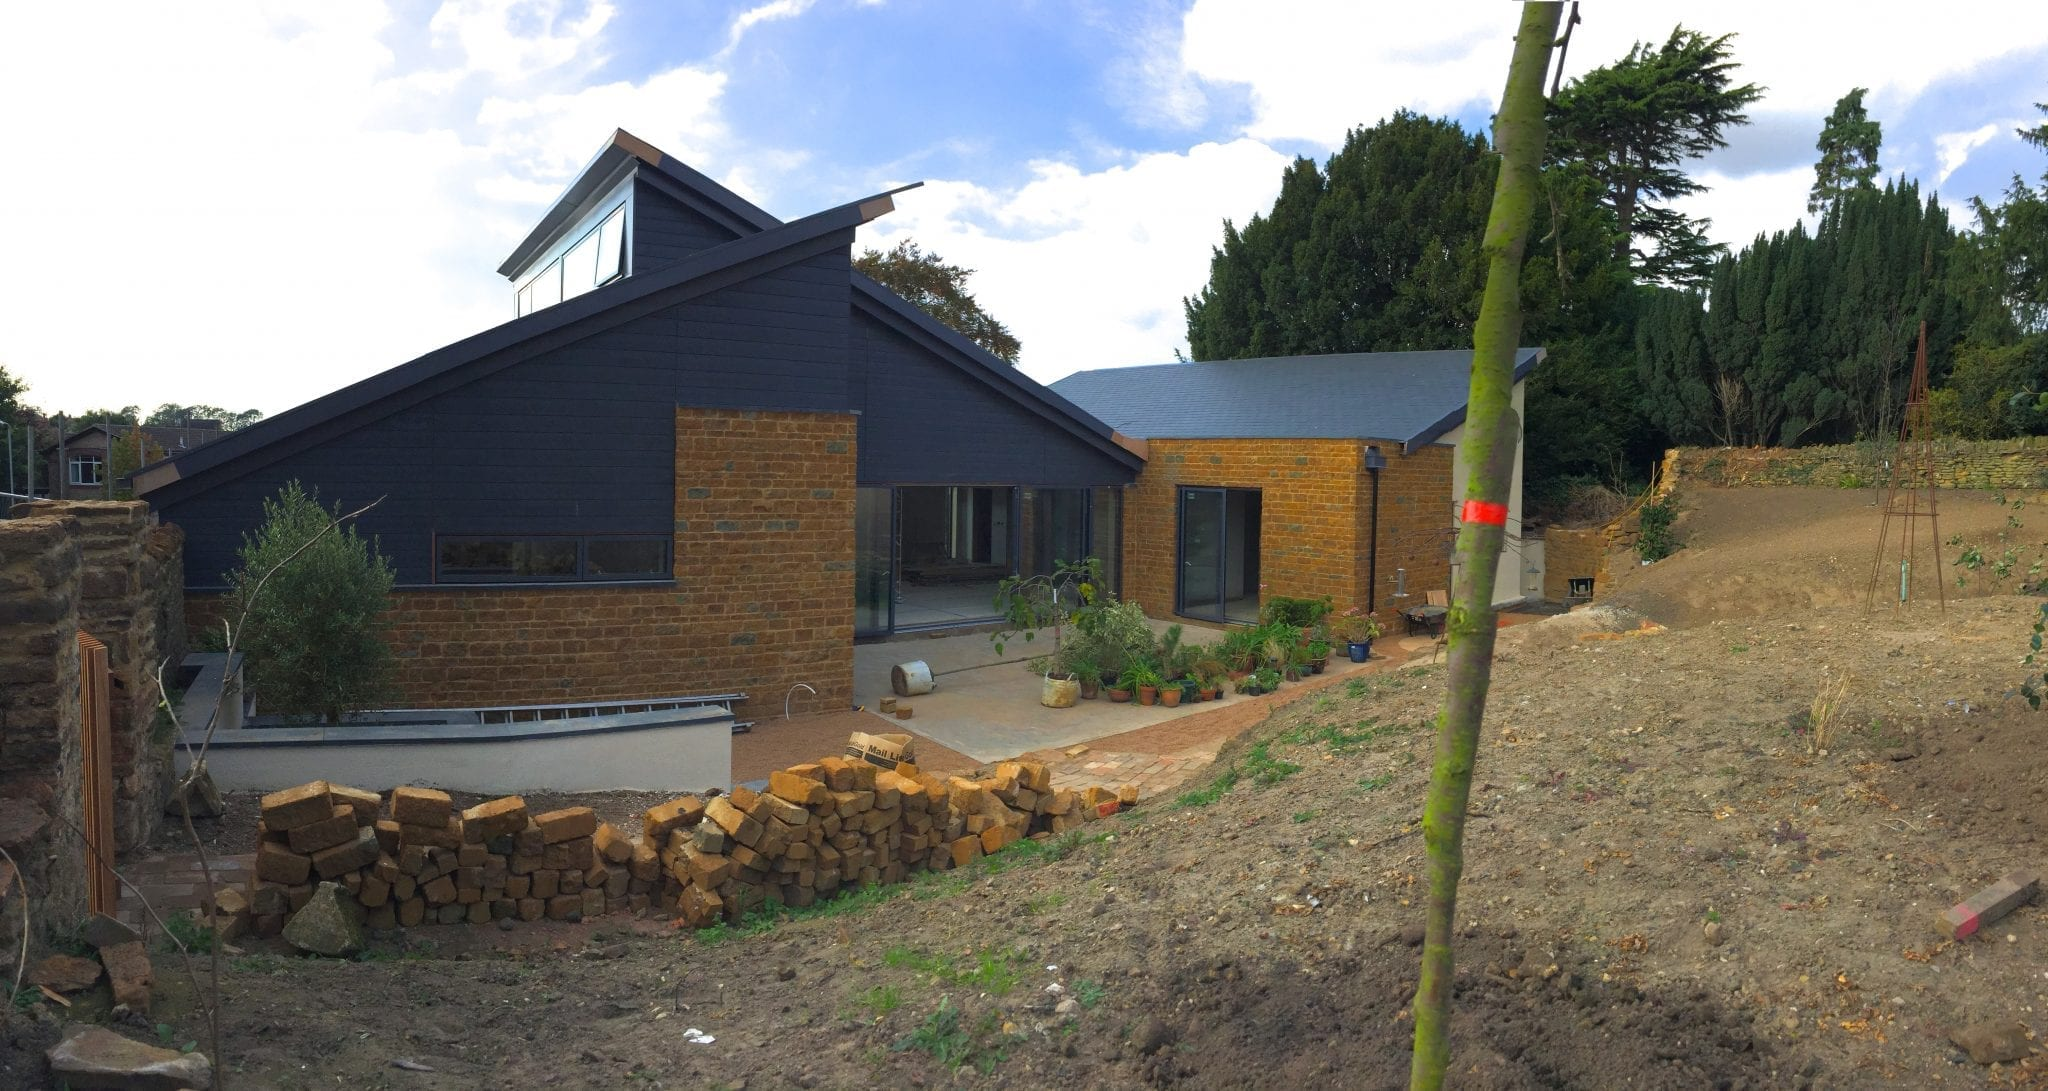 Broughton contemporary house nears completion…